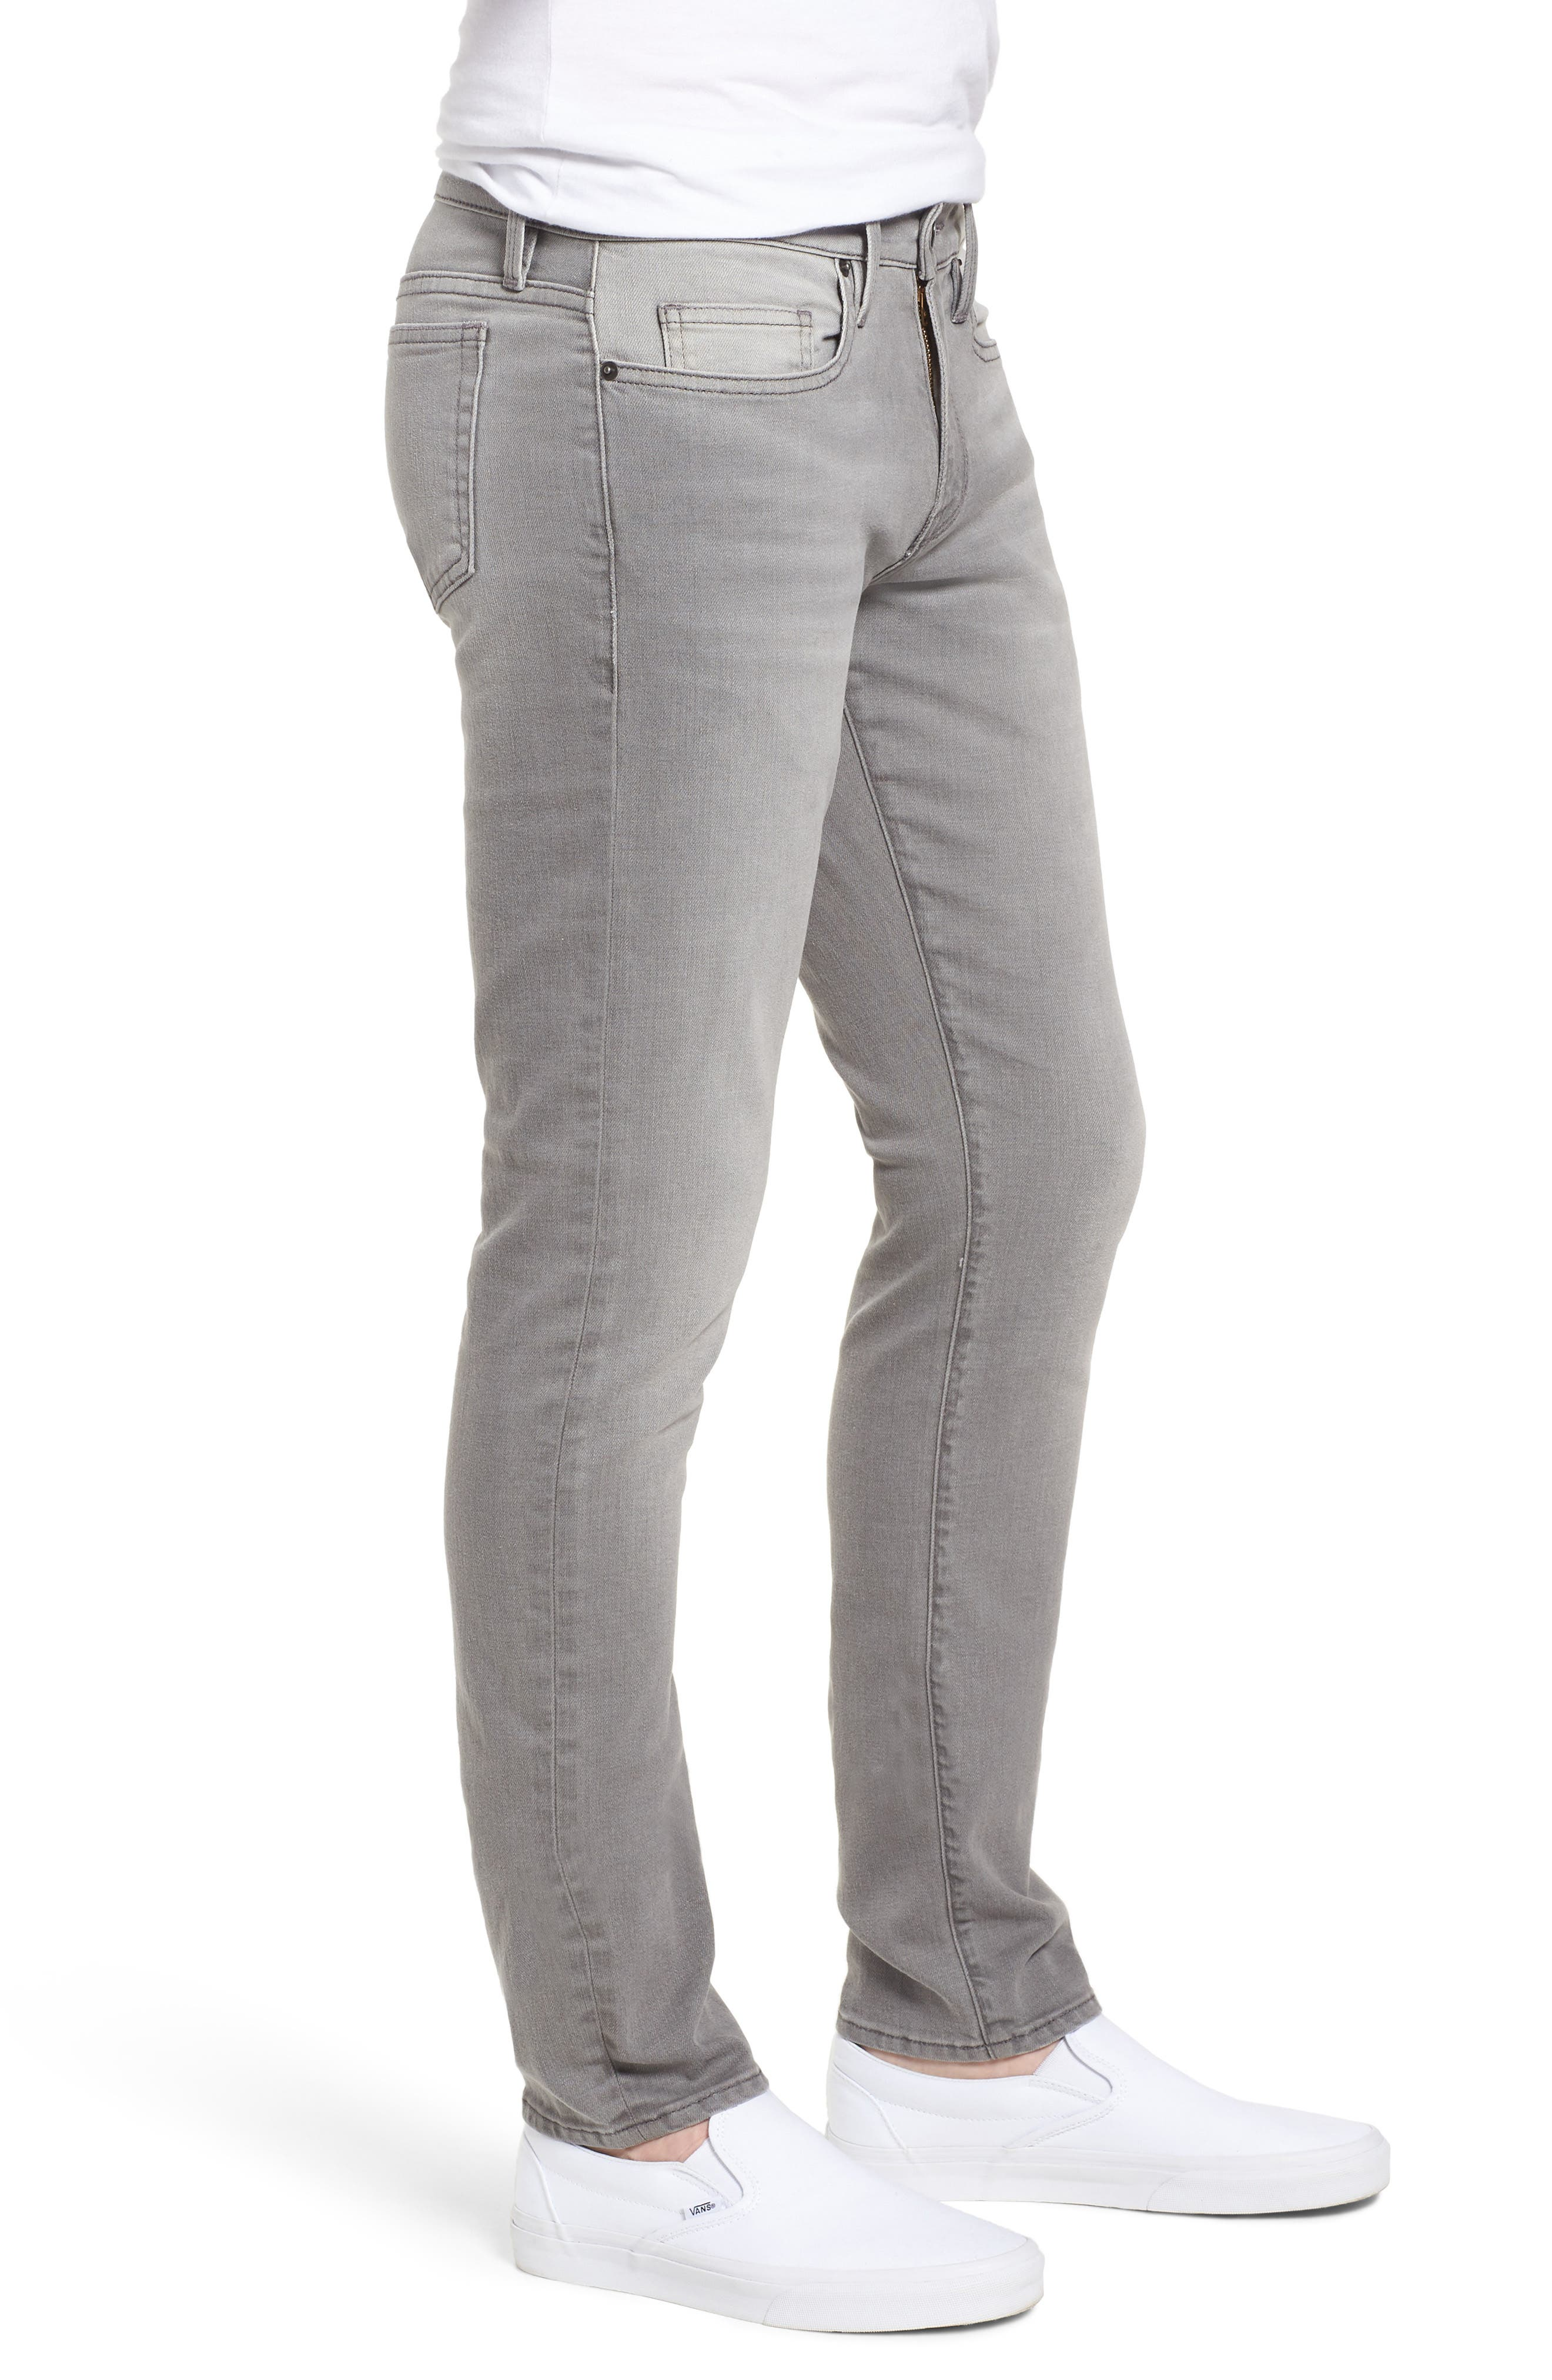 L'Homme Slim Fit Jeans,                             Alternate thumbnail 3, color,                             Bedwell